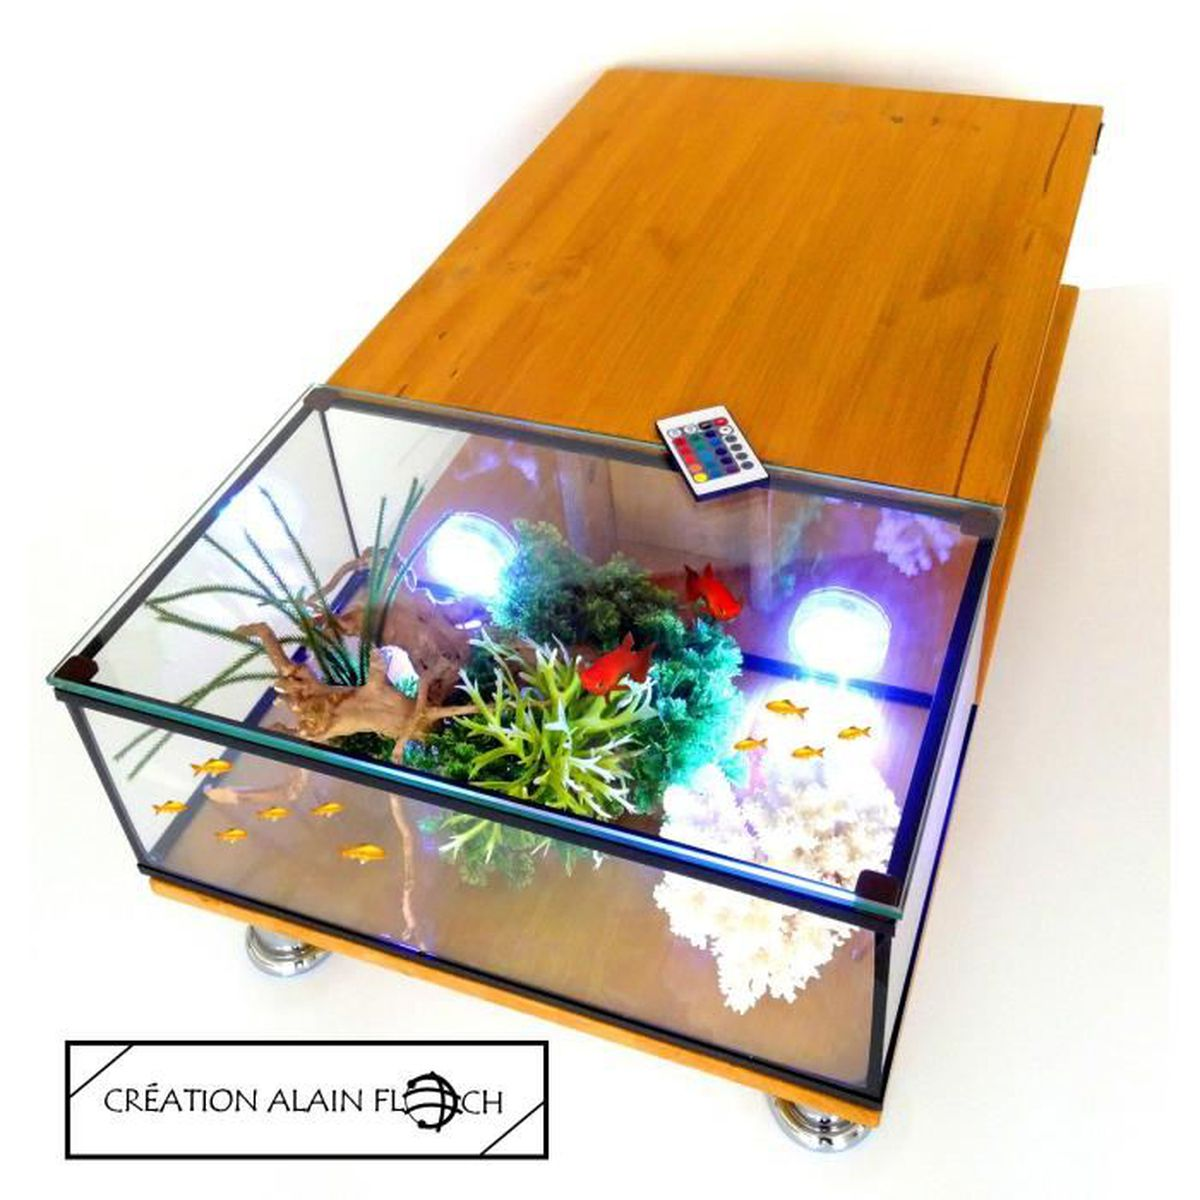 table basse aquarium annarousse 20 led design unique alain floch sans fil 16 couleurs avec. Black Bedroom Furniture Sets. Home Design Ideas